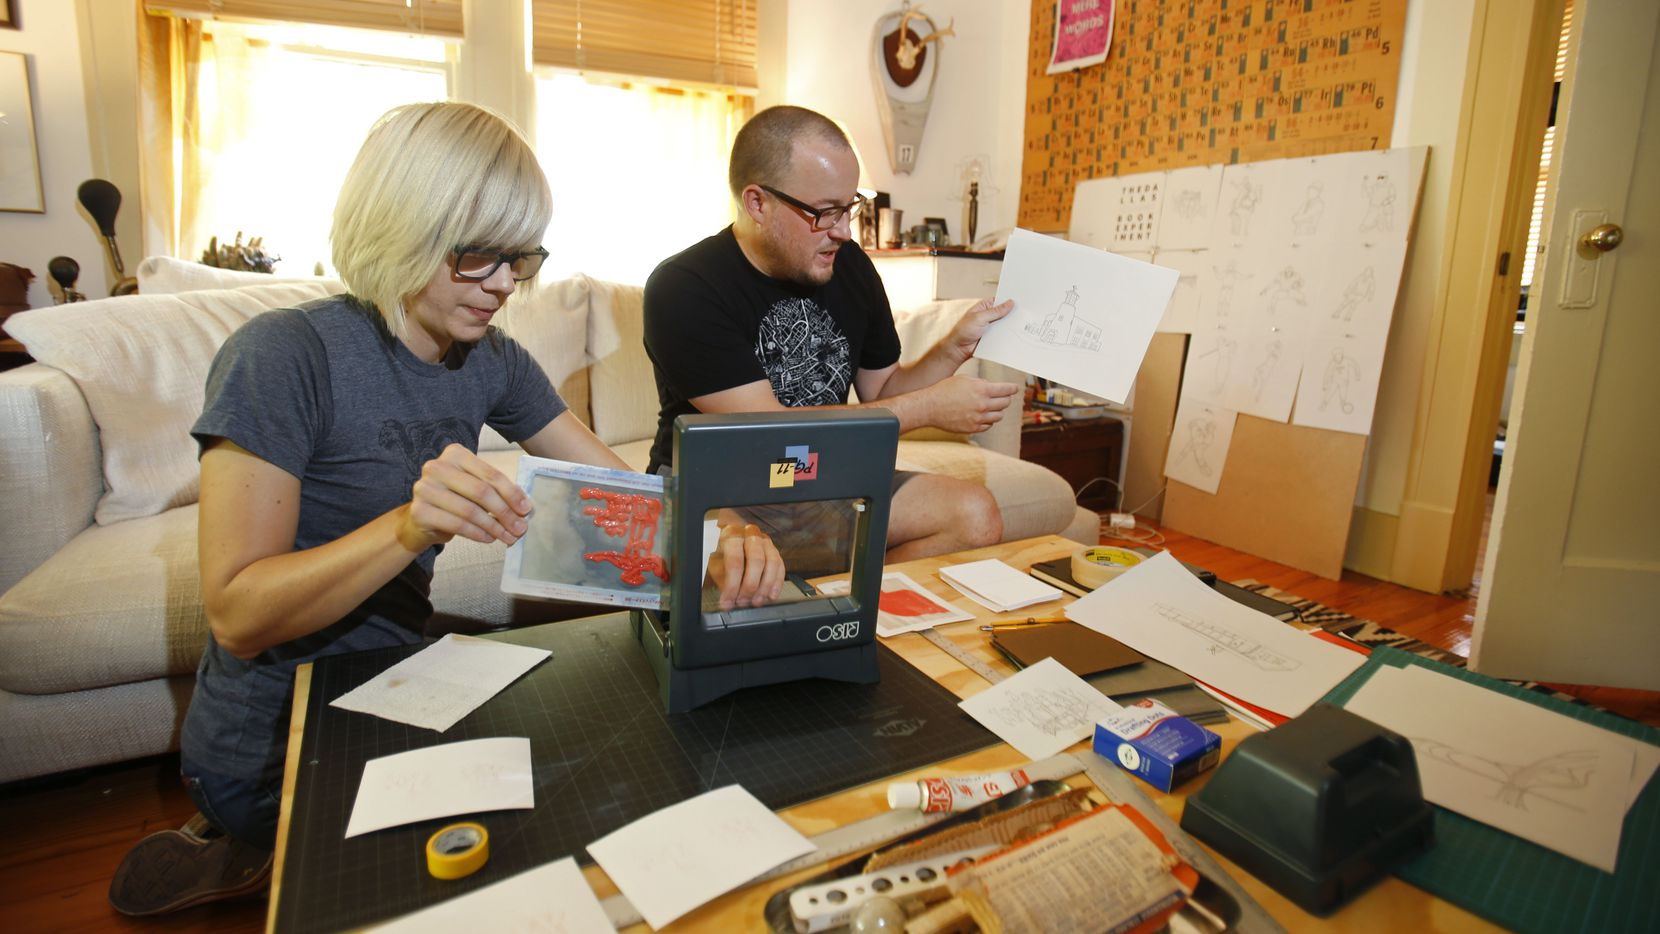 """Artists Gwen McGinn and Isaac Cohen make postcards to advertise the inaugural issue of """"The Dallas Coloring Book Experiment"""" zine for the first-ever Dallas Zine Party on Sept. 6. They are photographed screen printing in Cohen's home in Dallas."""